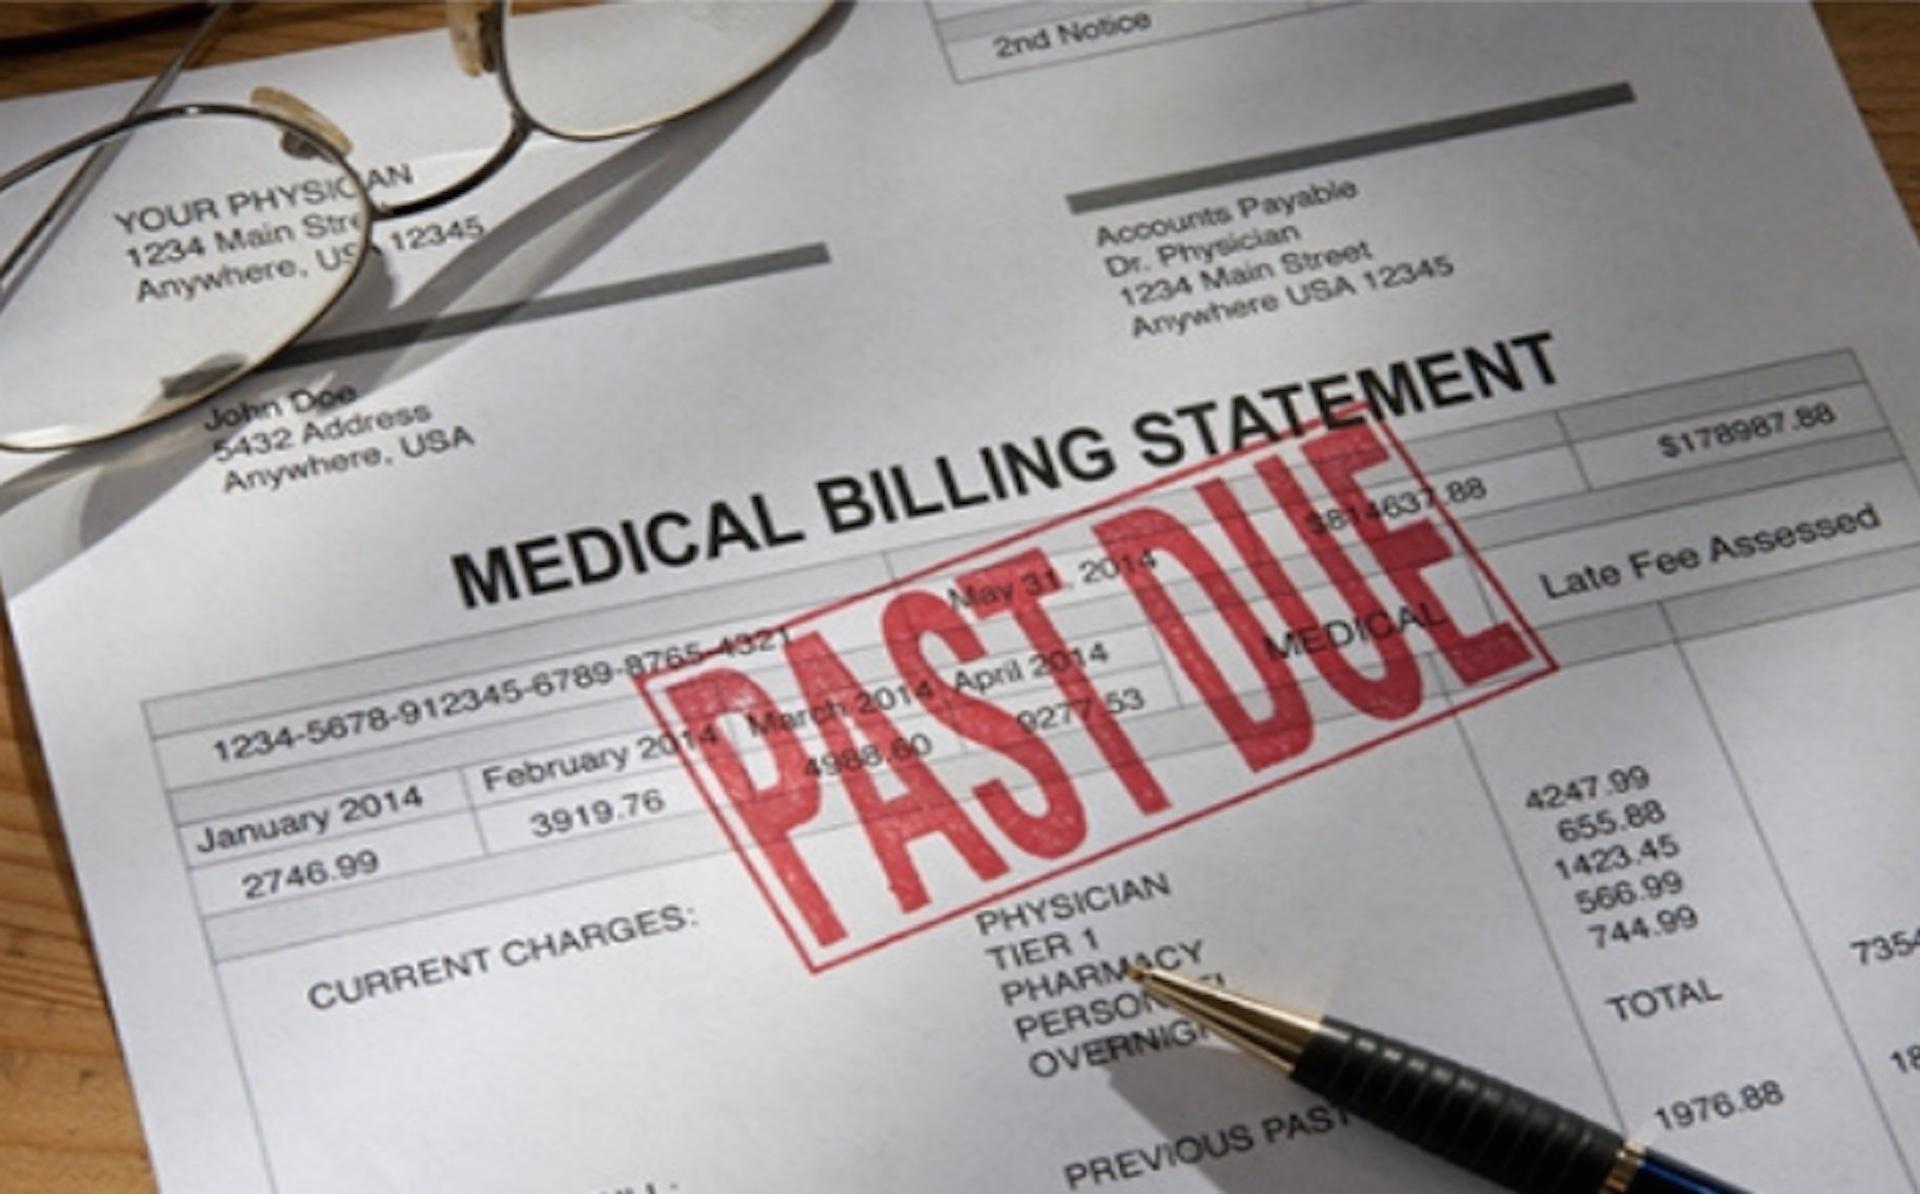 car accident attorney Miami - PAST DUE Medical Billing Settlement Statement